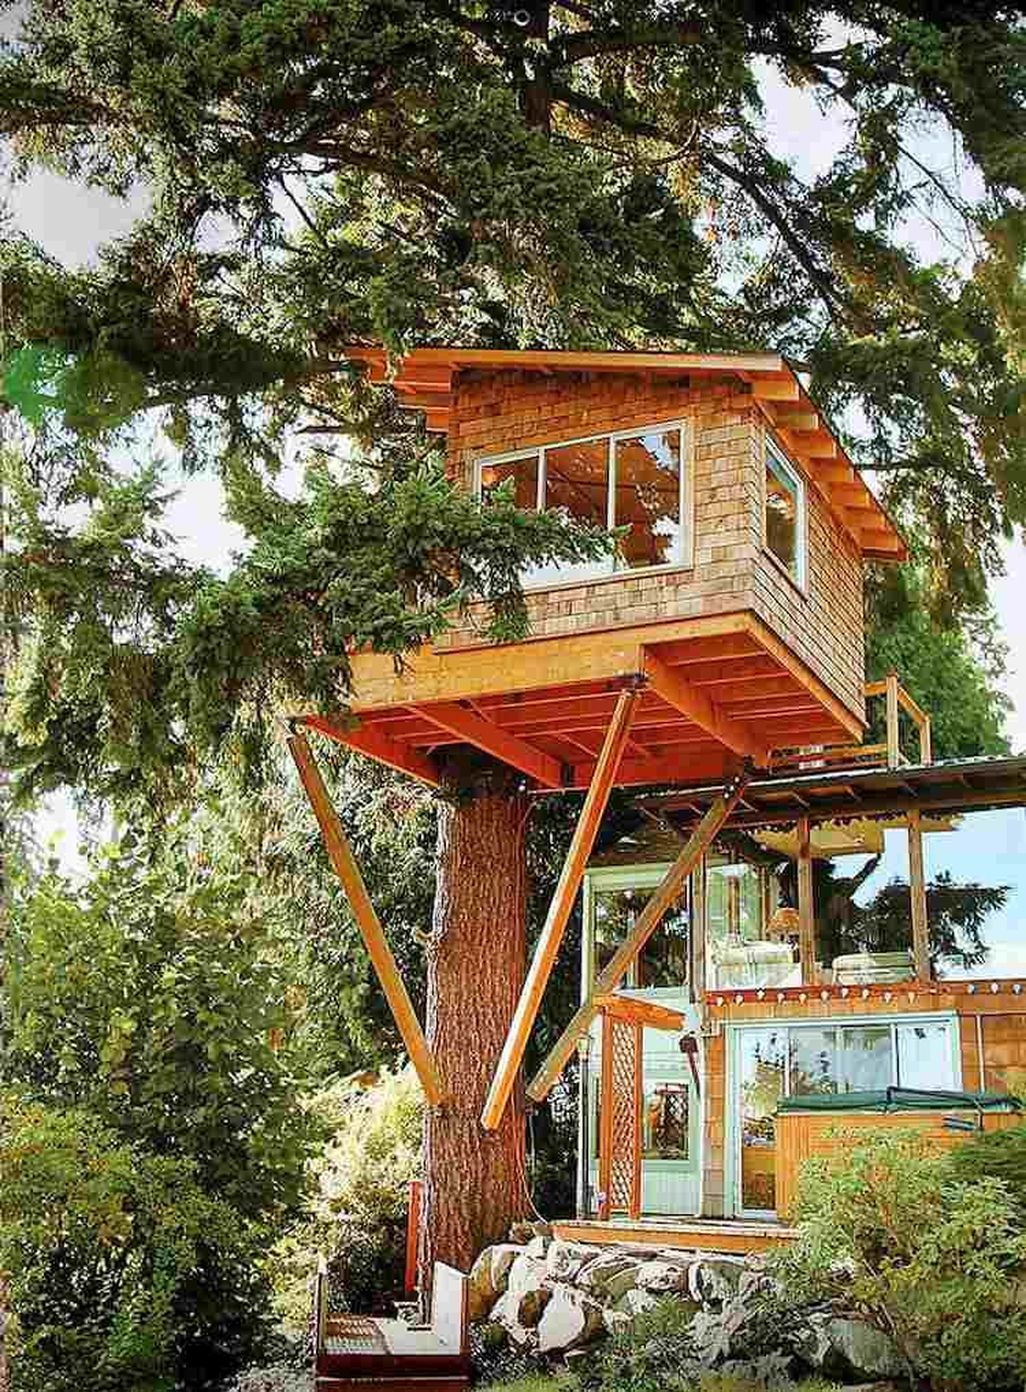 Nice 46 Awesome Treehouse Masters Design Ideas Will Make Dream More At Https Homishome Com 2018 08 07 46 A Cool Tree Houses Tree House Kids Tree House Plans Backyard treehouse treehouse ideas